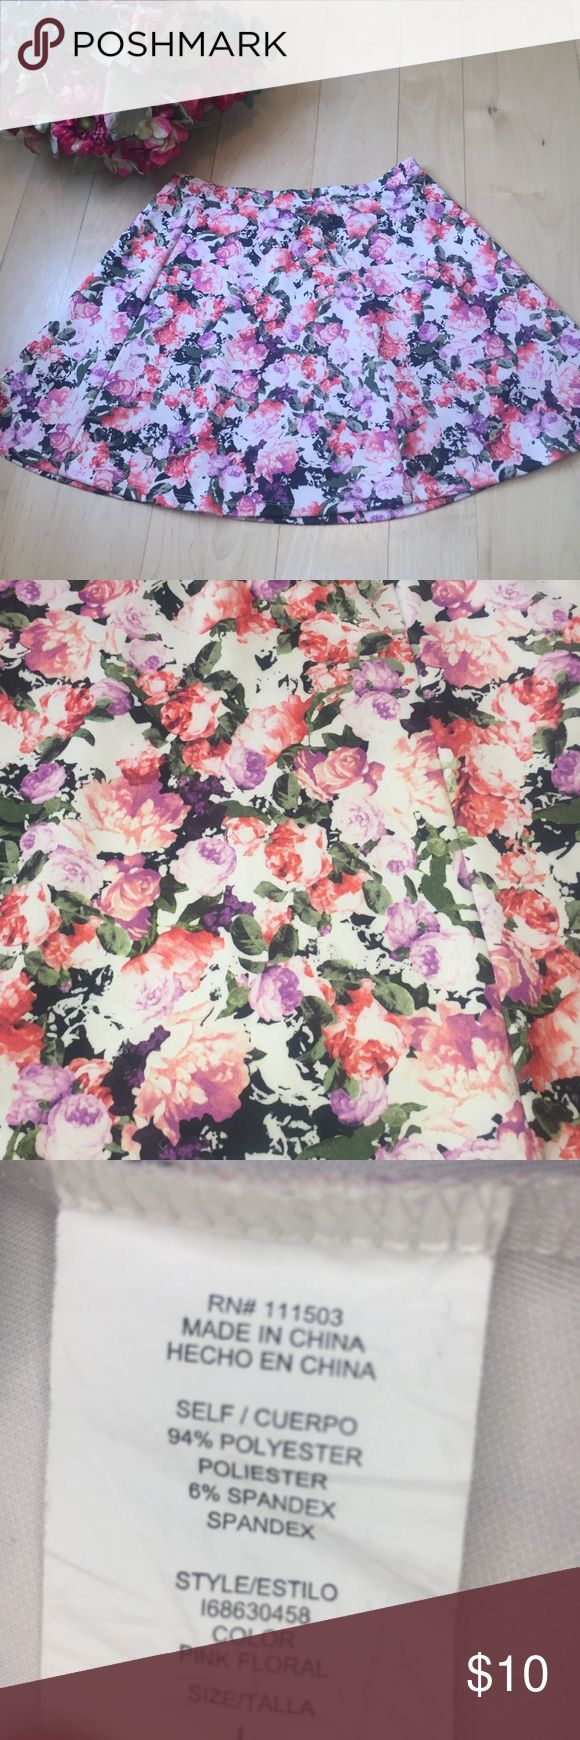 Coral floral print skirt Circle mini skirt with coral and purple flower print (second picture shows more of the true colors of the skirt). Gently worn. 15 inches at waistband. 17 inches from top of waistband to hem. Skirts Mini